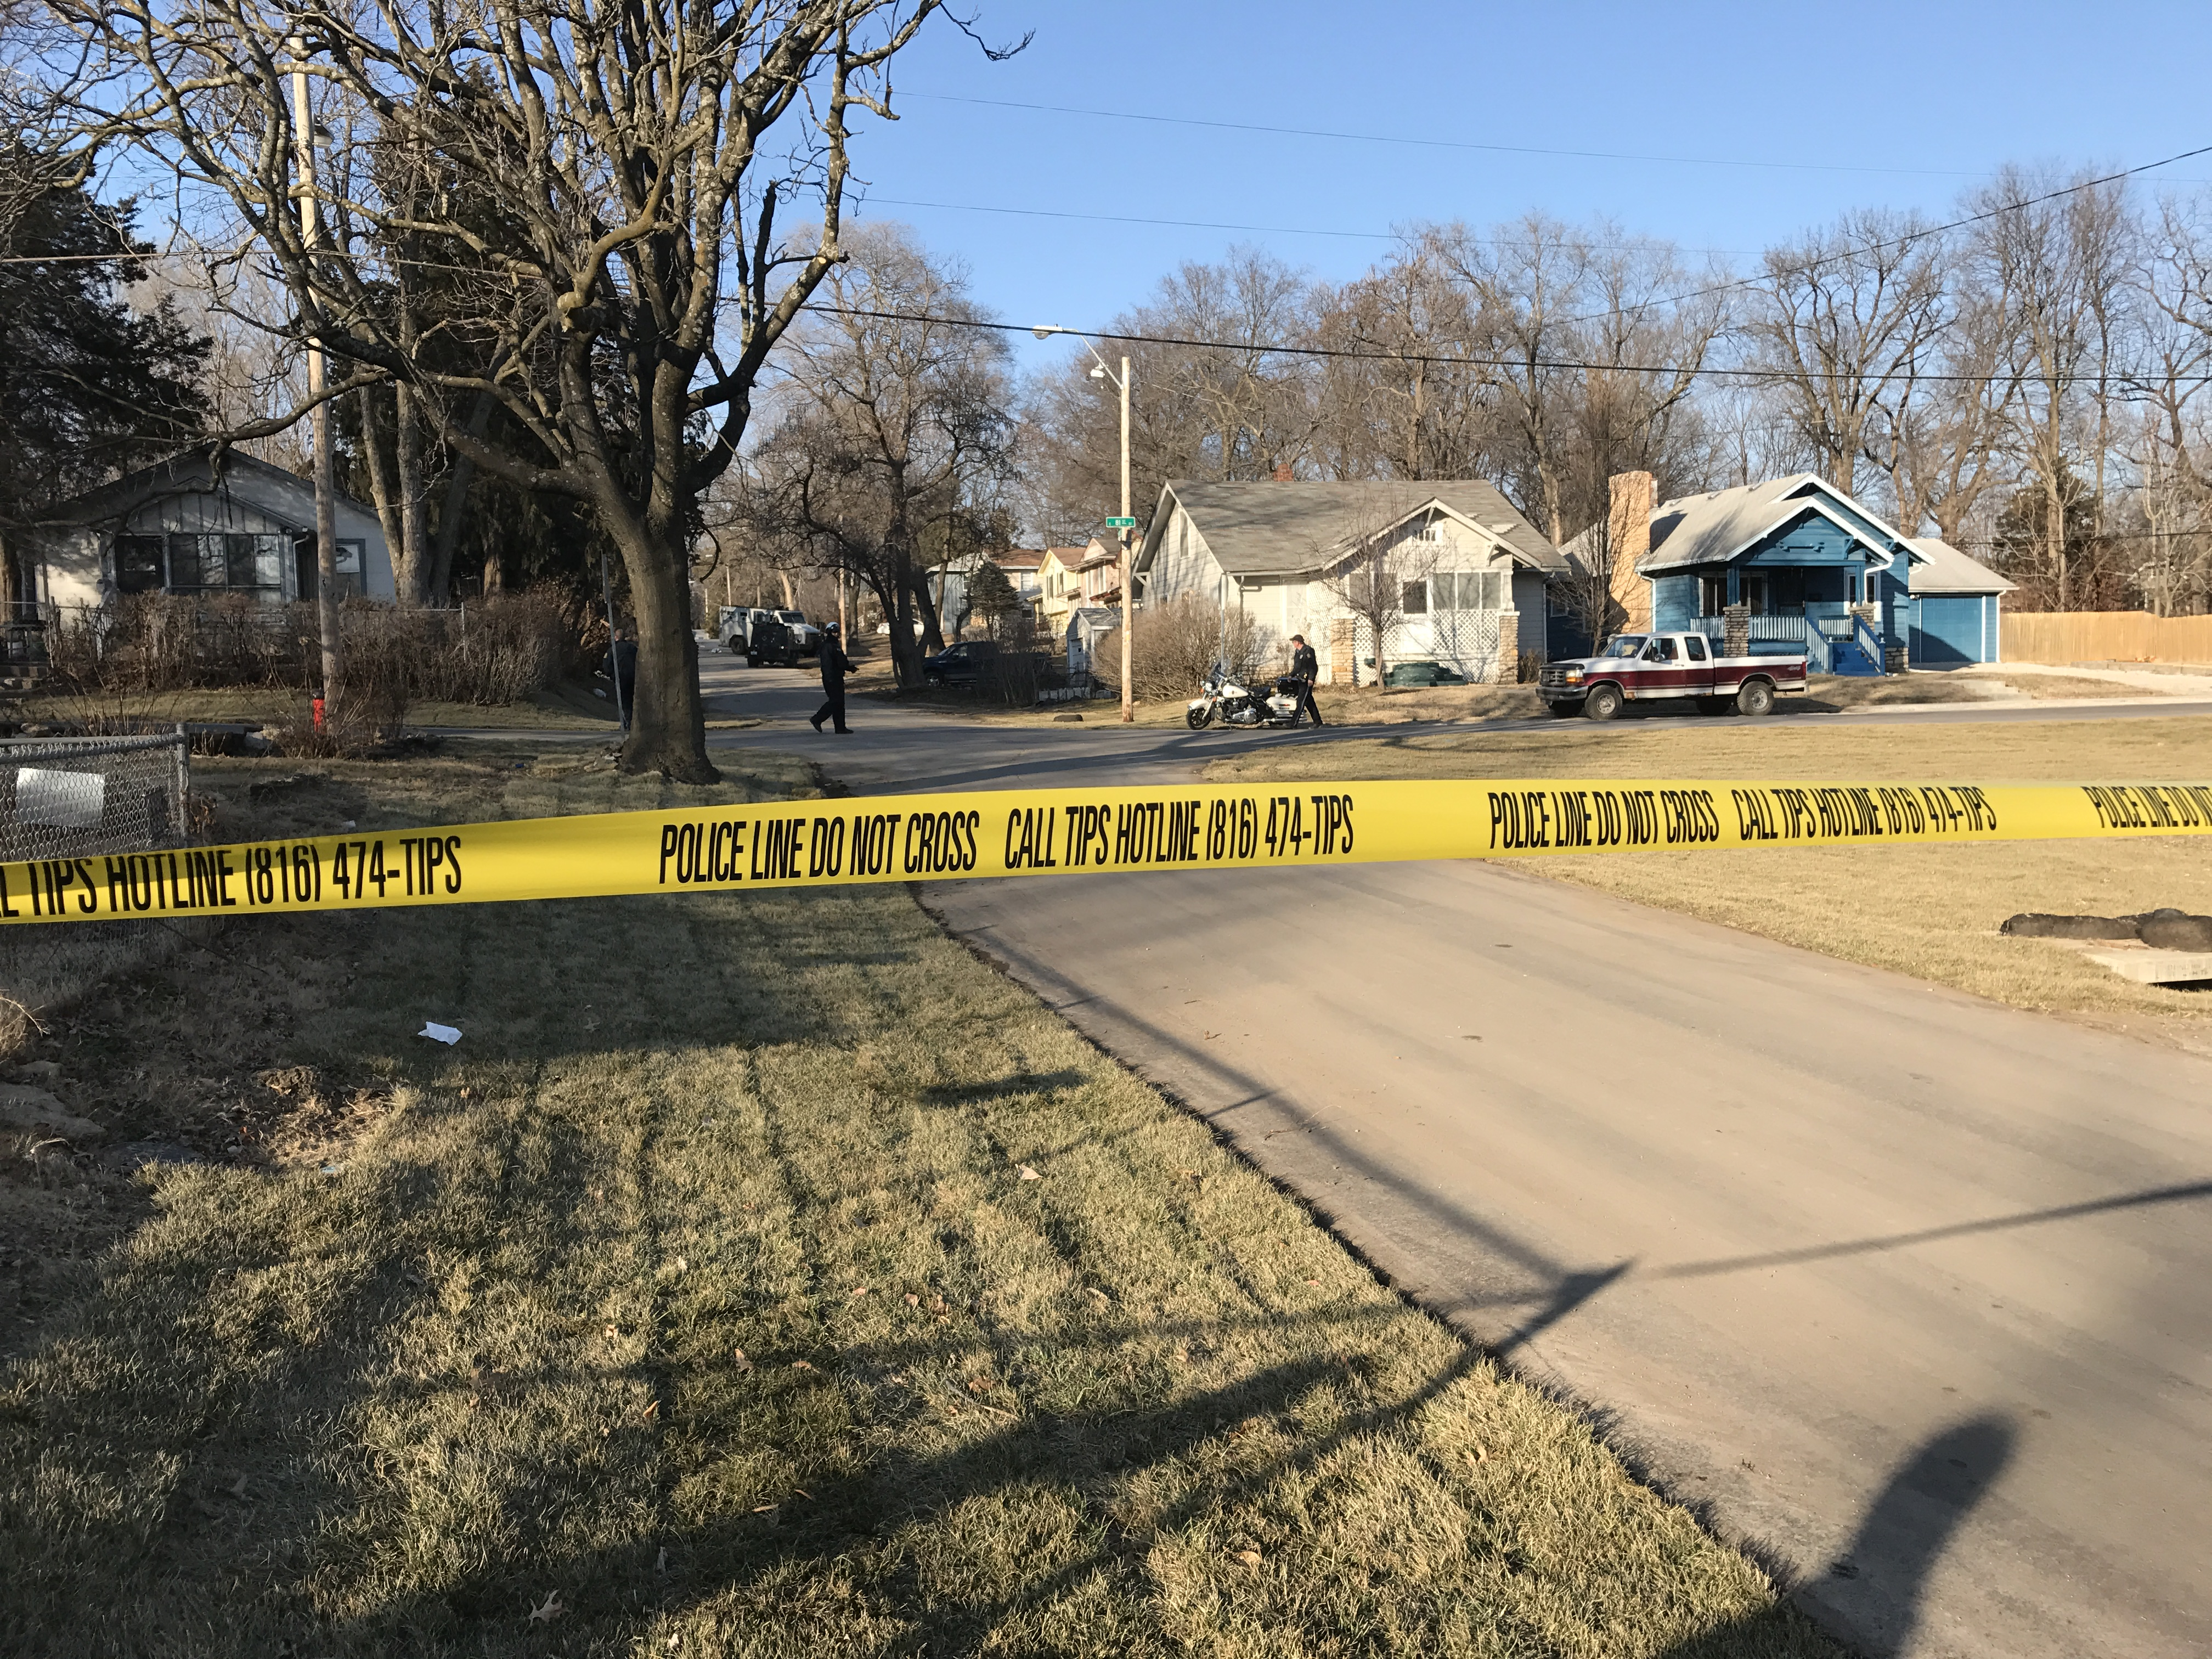 A suspect in a standoff was fatally shot by officers on Saturday.